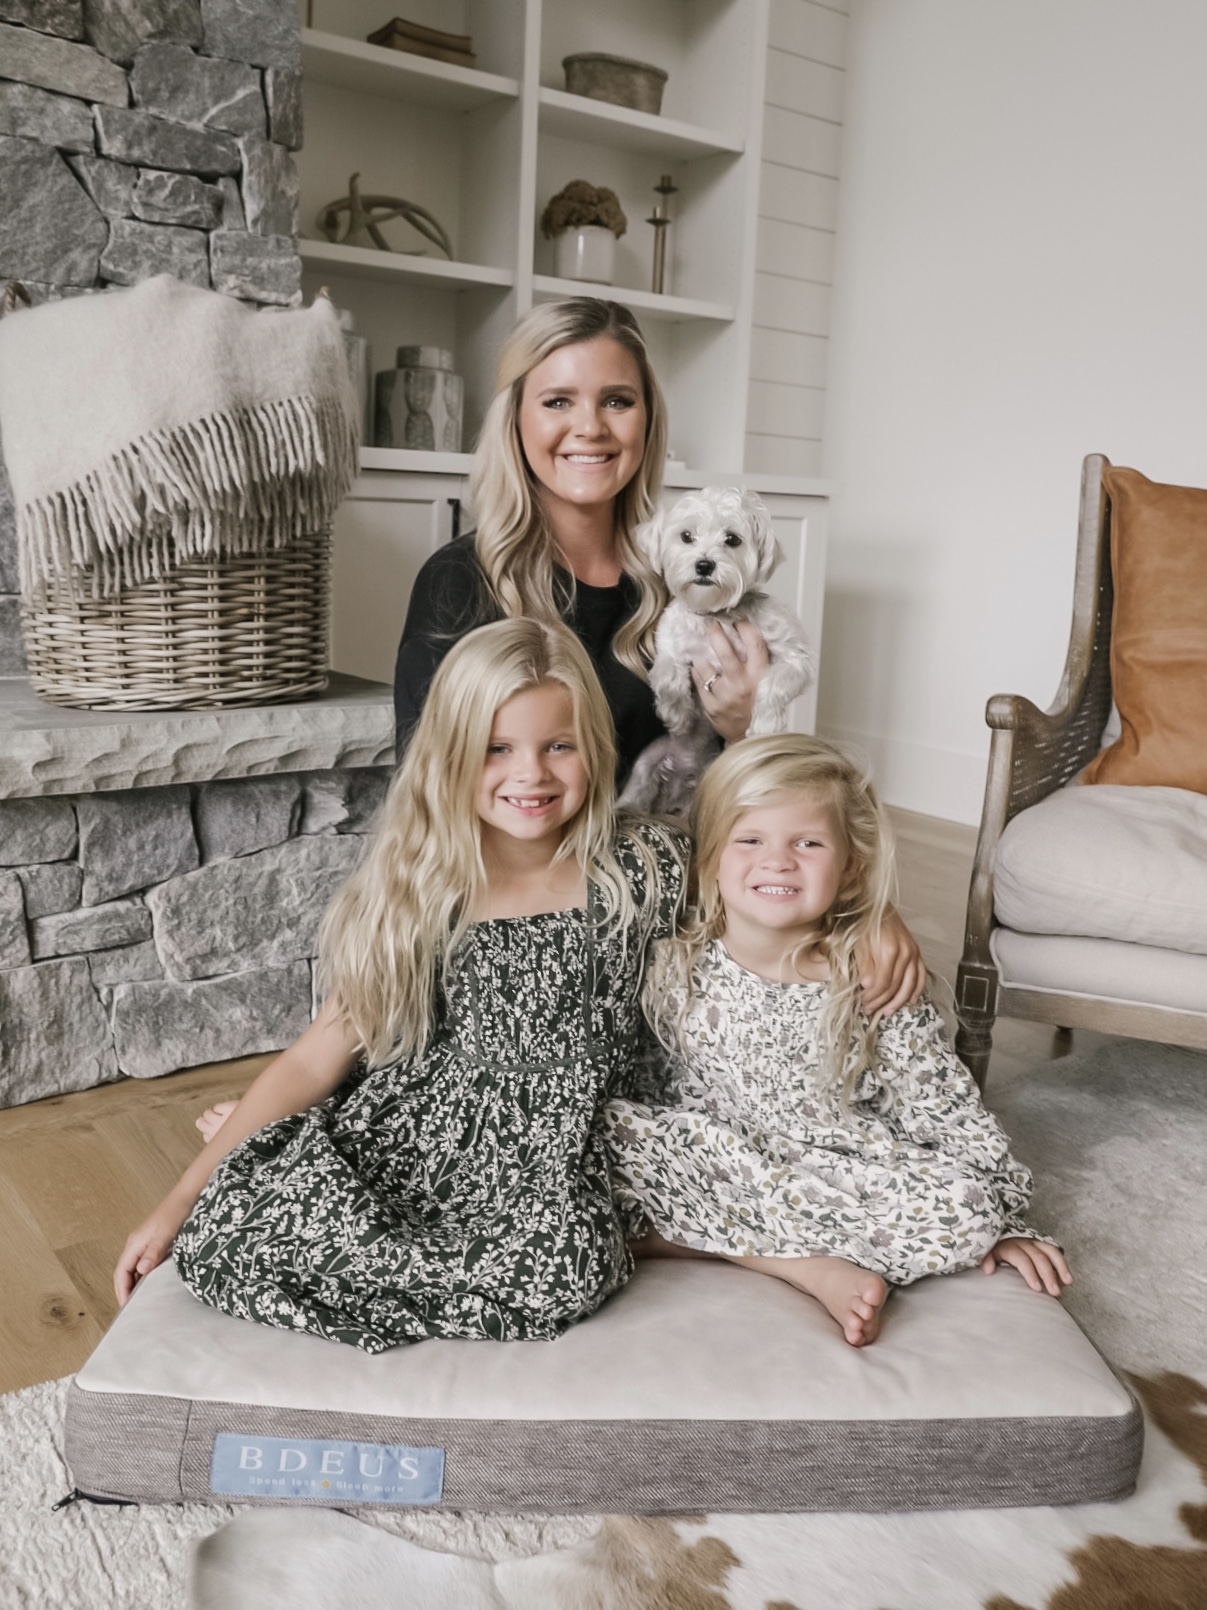 Cristin Cooper and family with the BDEUS dog bed